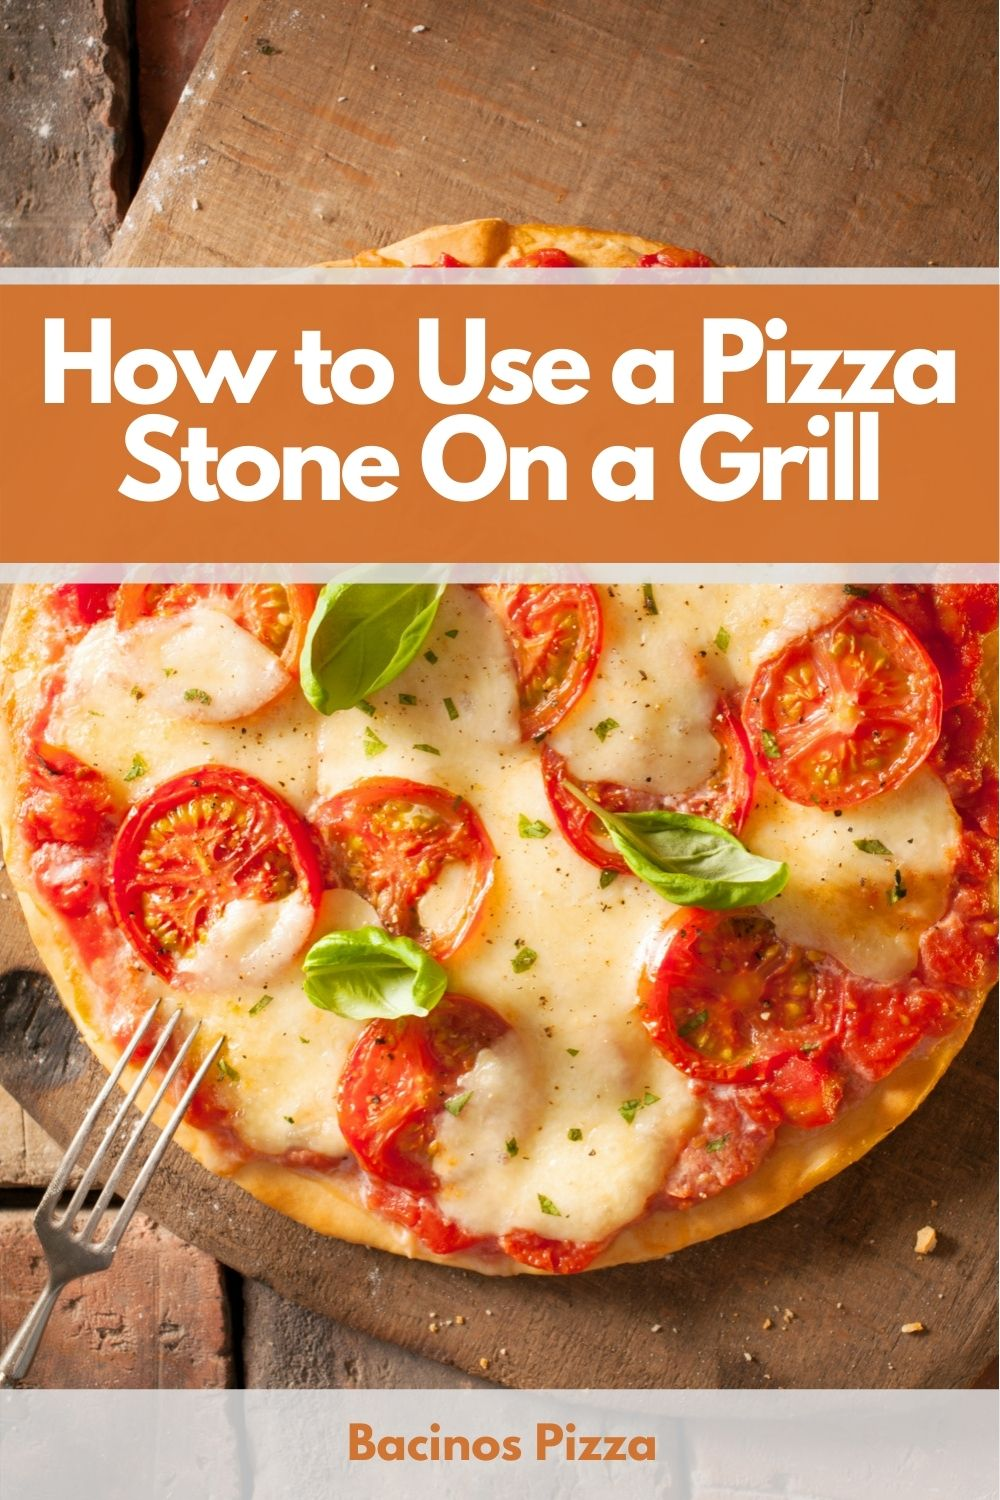 How to Use a Pizza Stone On a Grill pin